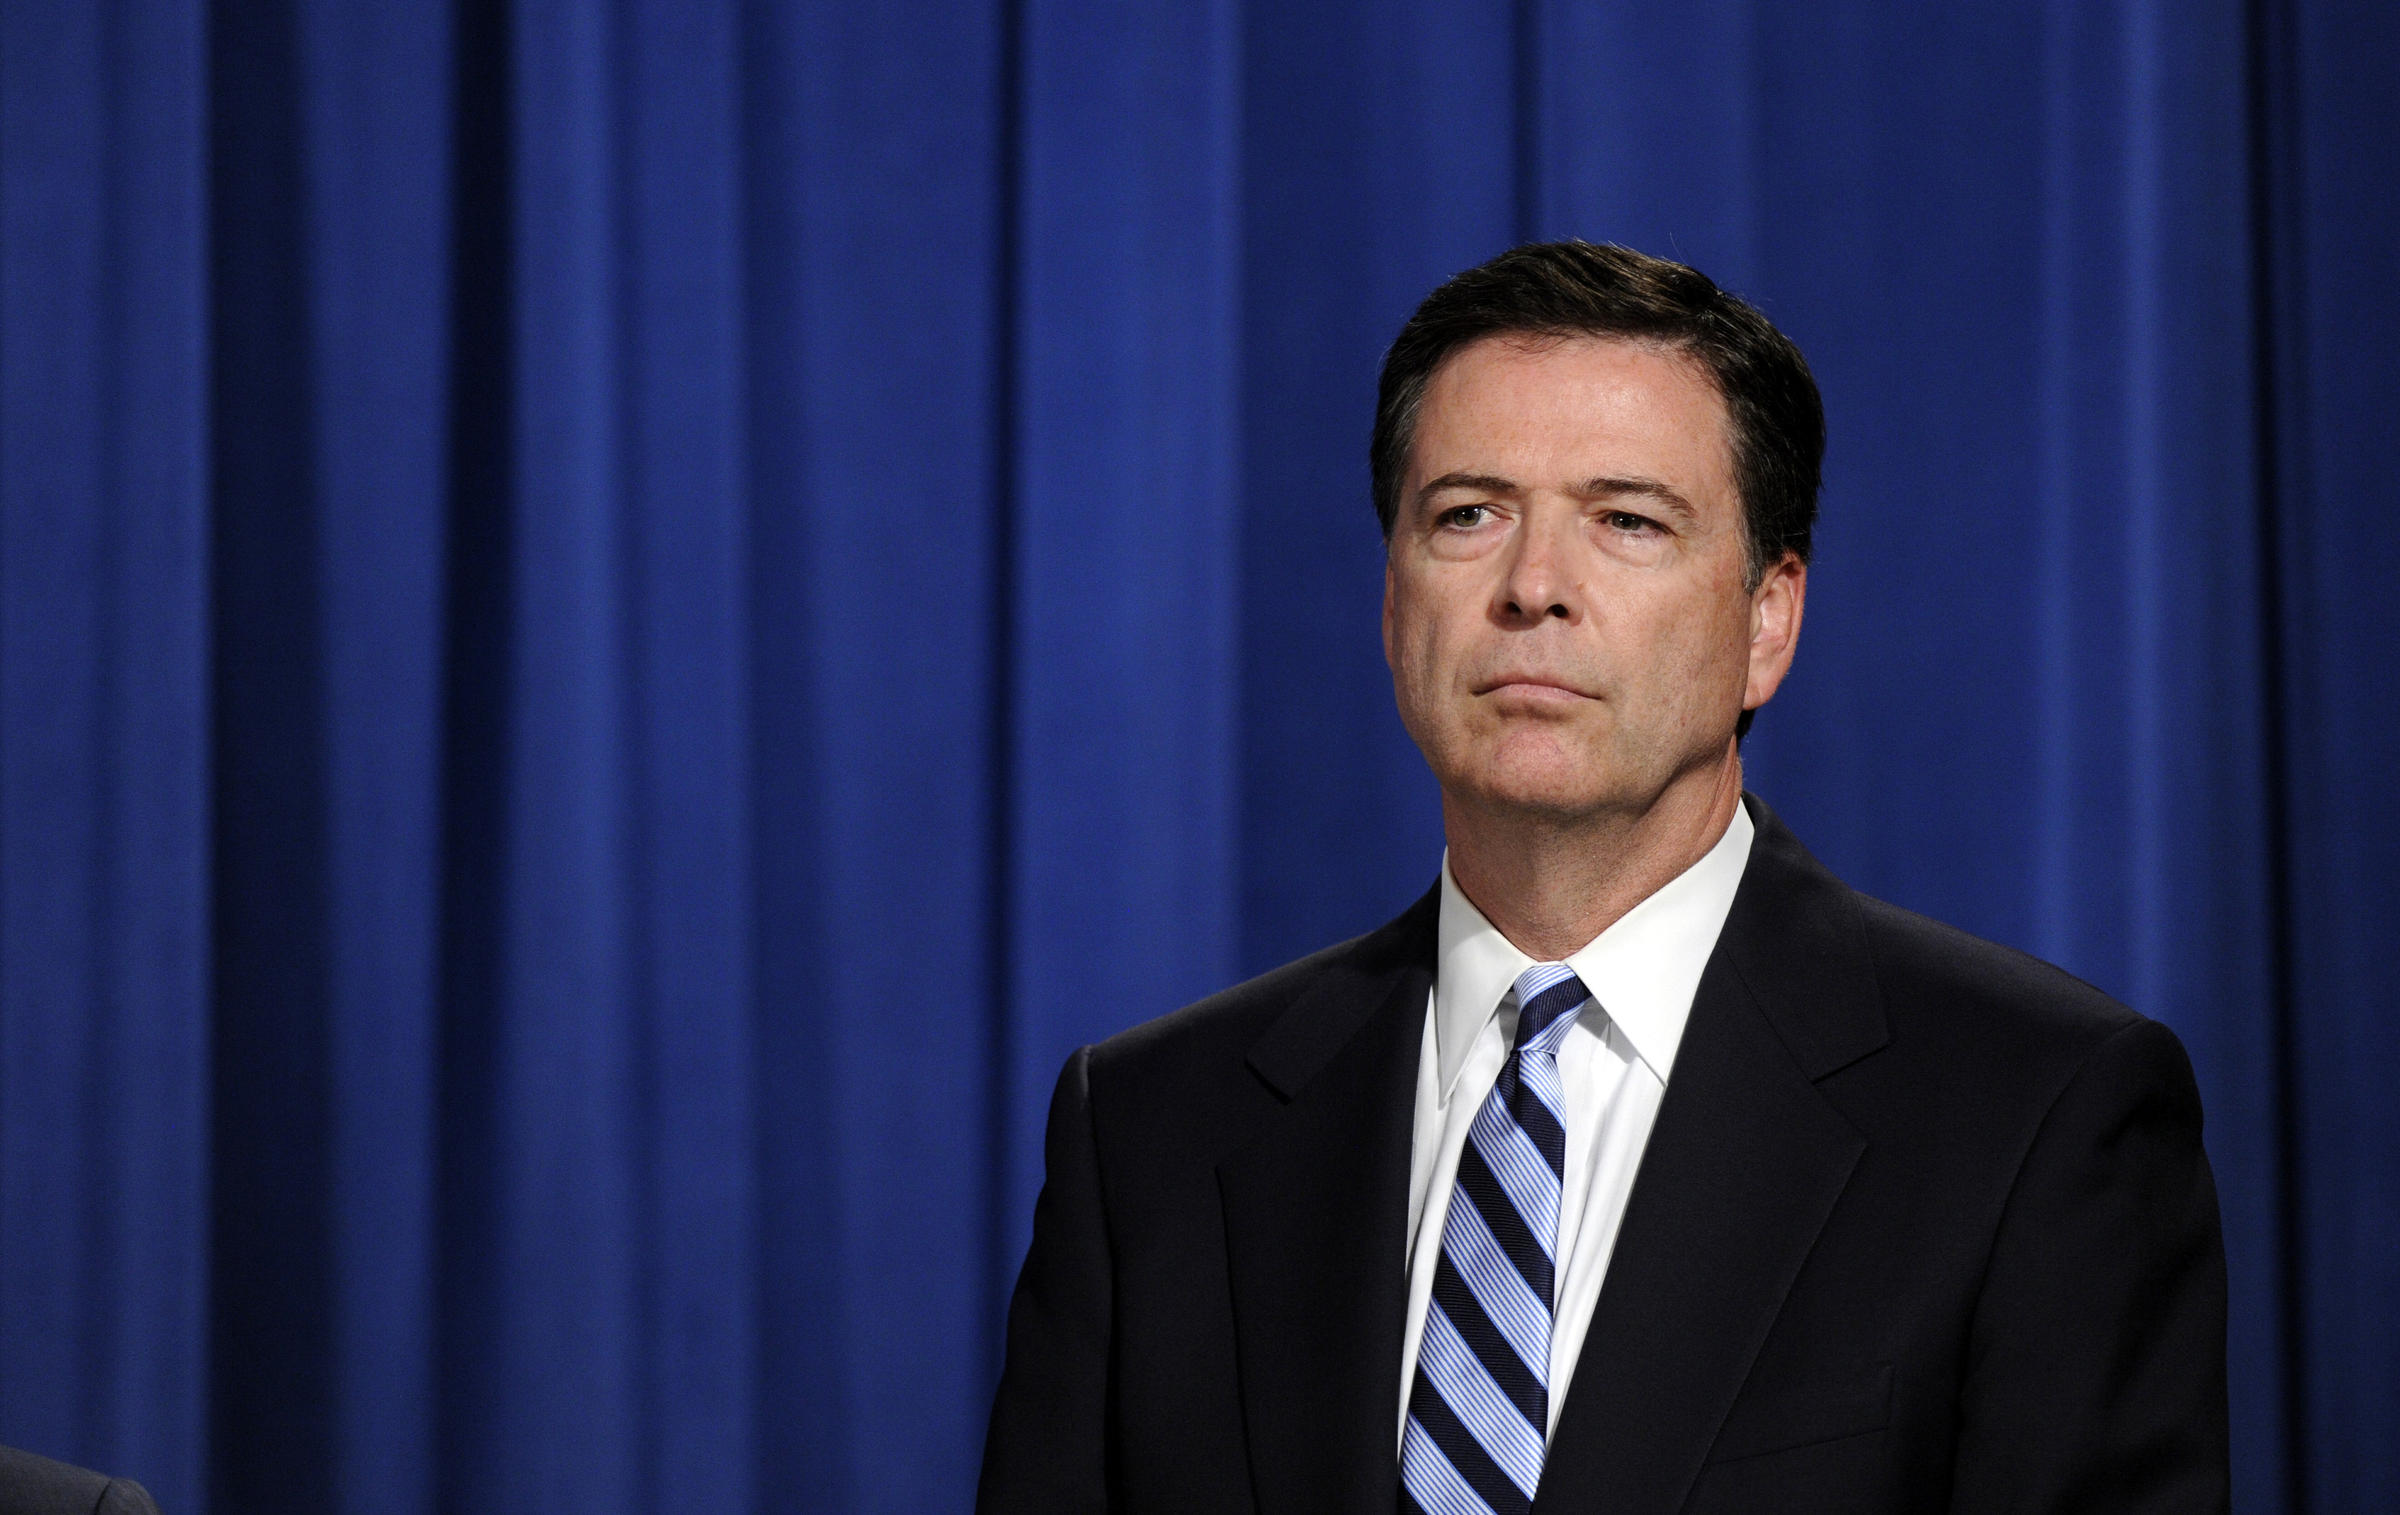 Fired FBI Director James Comey testifies before Congress Live